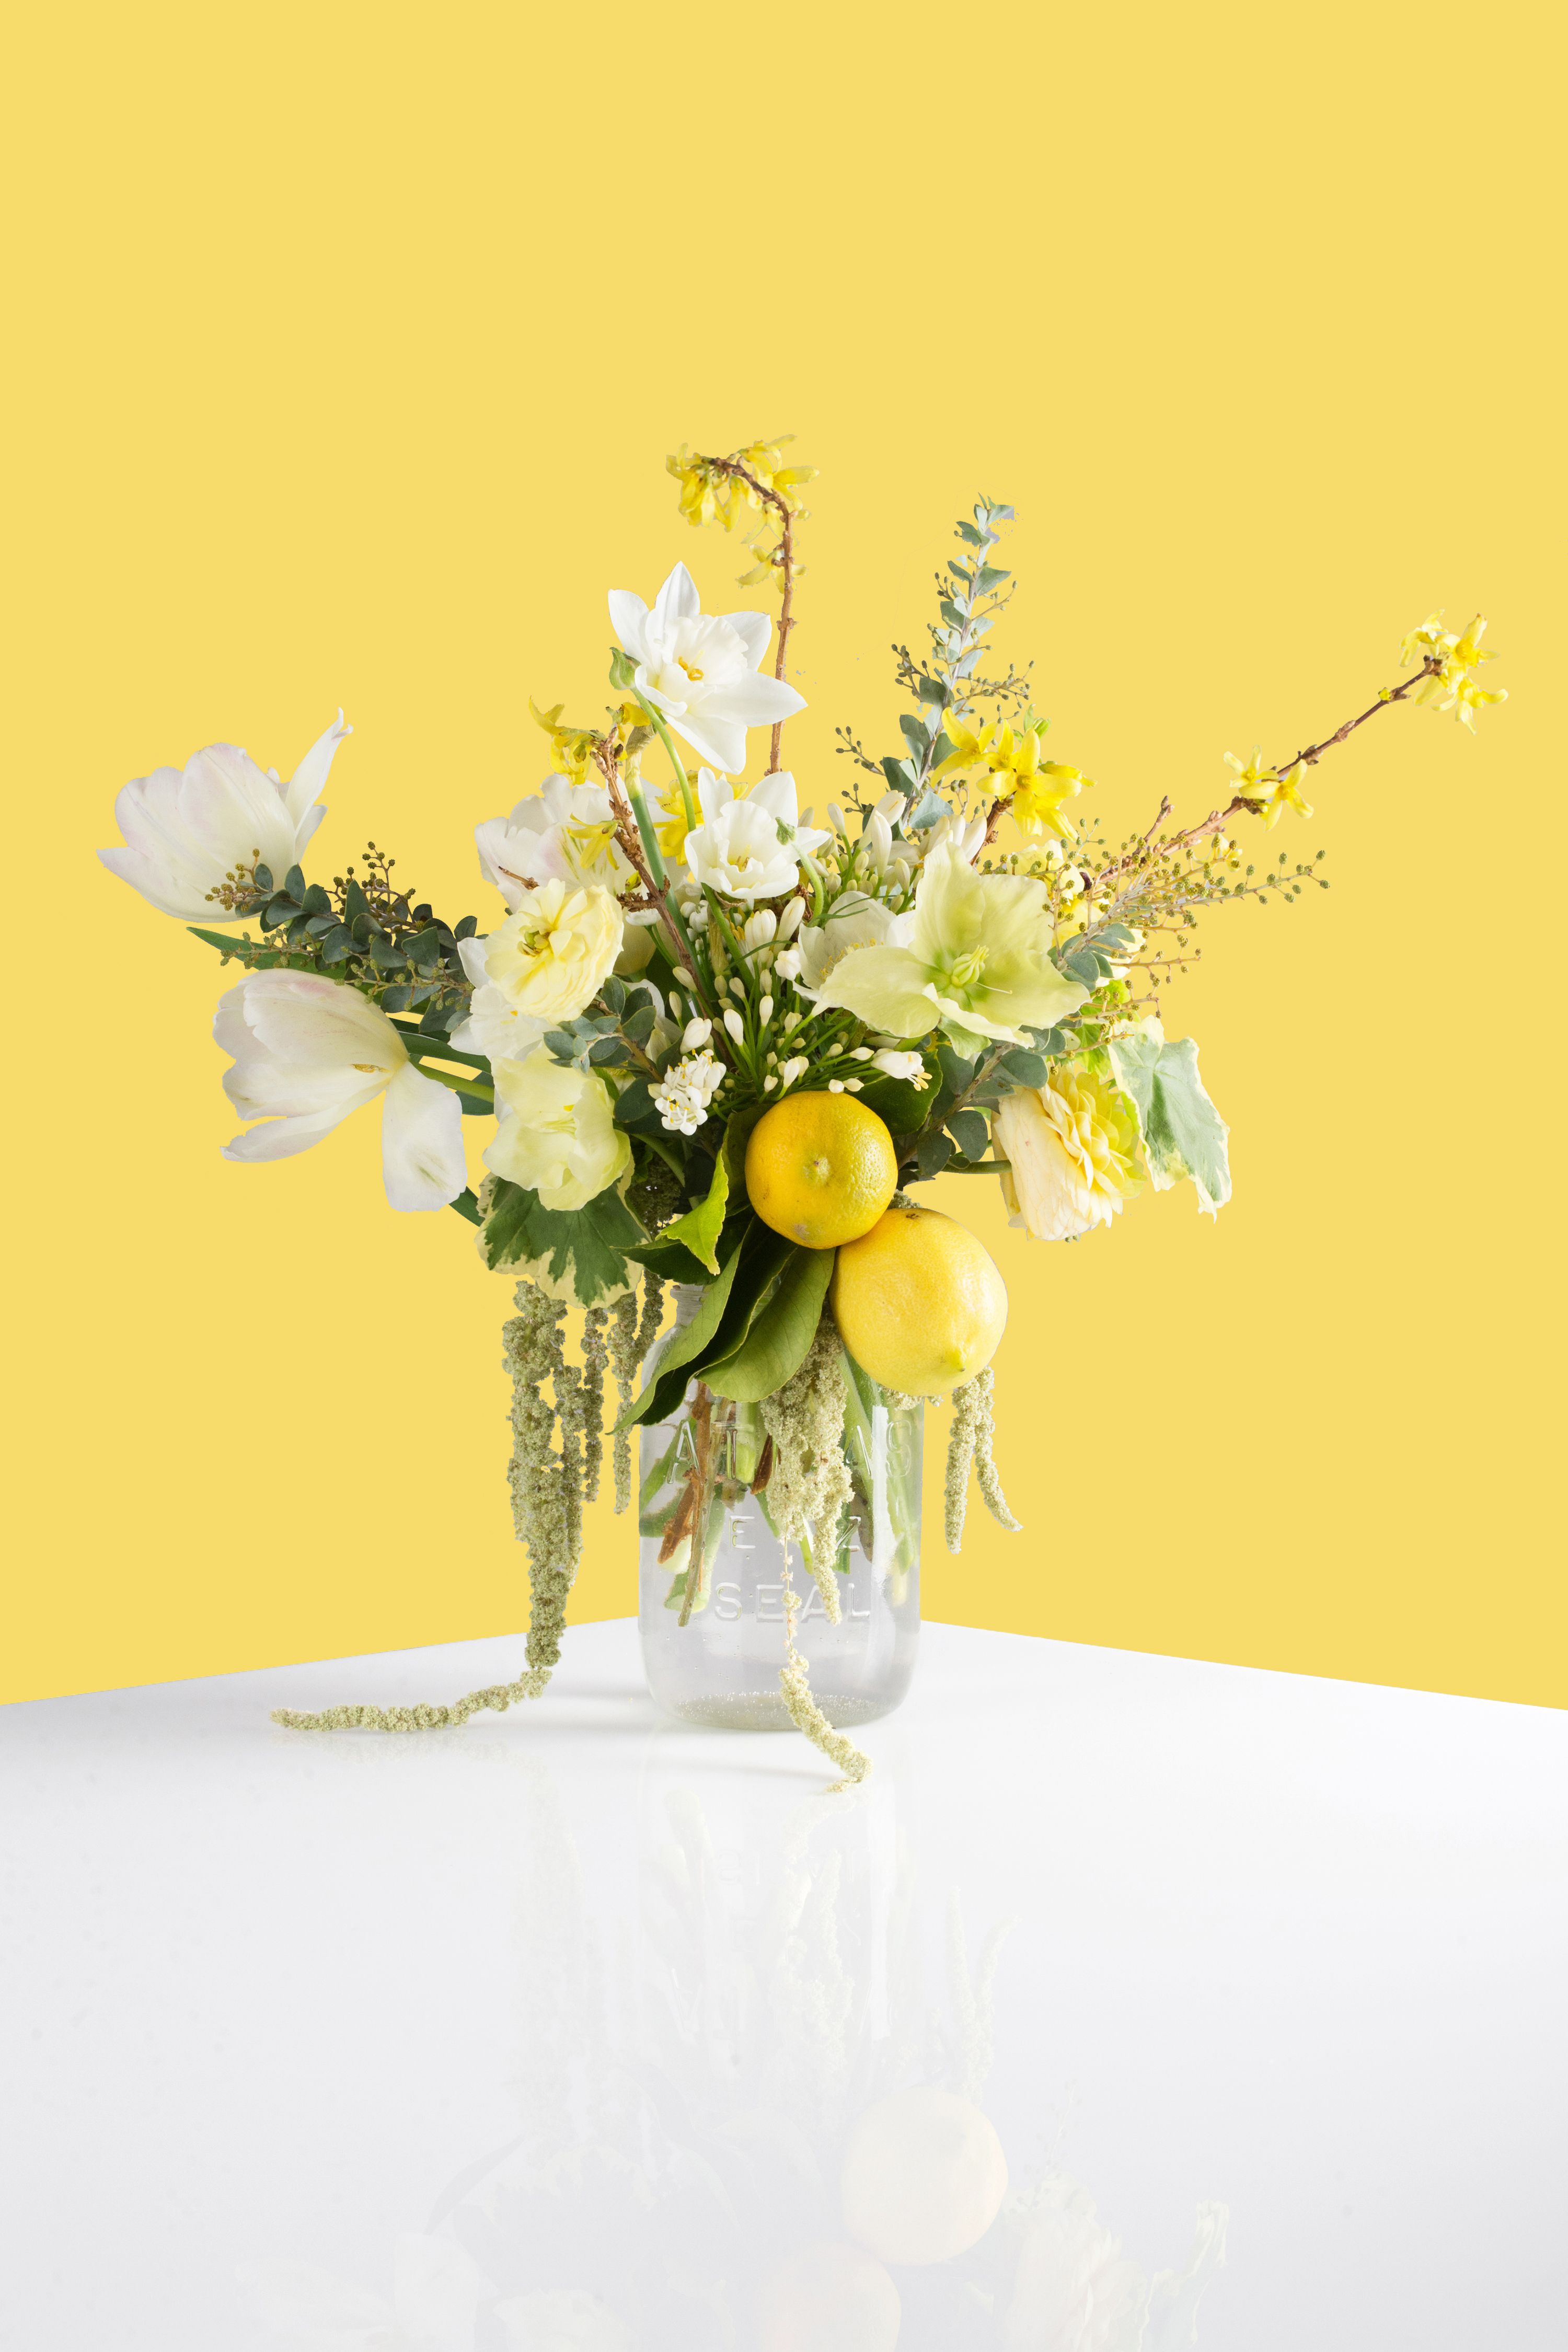 <p>Refreshingly unpretentious, this arrangement iscomposed of earth's greatest healing agents:lemons, allium (onion), and geranium, allin avintage ball jar that looks like it's been nabbed from your grandmother's kitchen.</p> <p><em>Materials: Tulips, Daffodils, Ranunculus, Acacia, Hellbores (Winter Rose), Forsythia, Agapanthus, Allium,Geranium, Amaranth</em></p> <p><em>Retails at $150.</em></p>